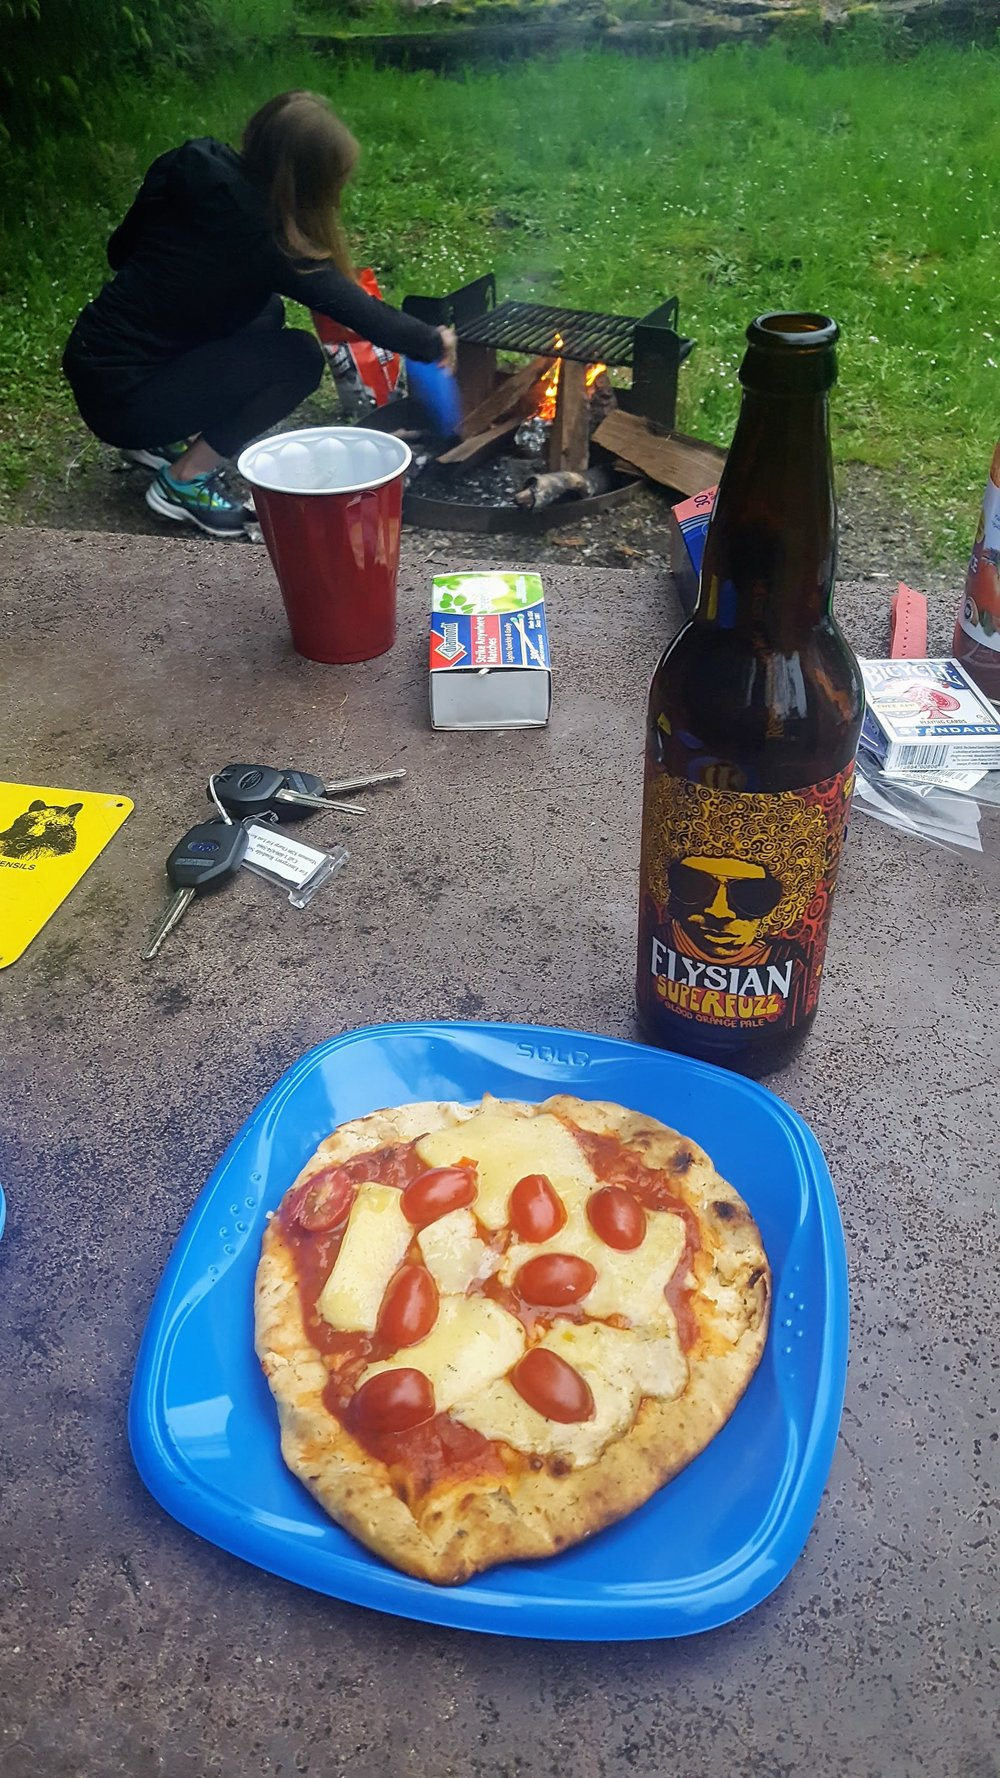 - Superfuzz Blood Orange Pale Ale     ElysianFirst taste: Hoh Campground, Olympic National Park. Pairs well with Naan Campfire Pizza.        *Favorite beer of 2017*